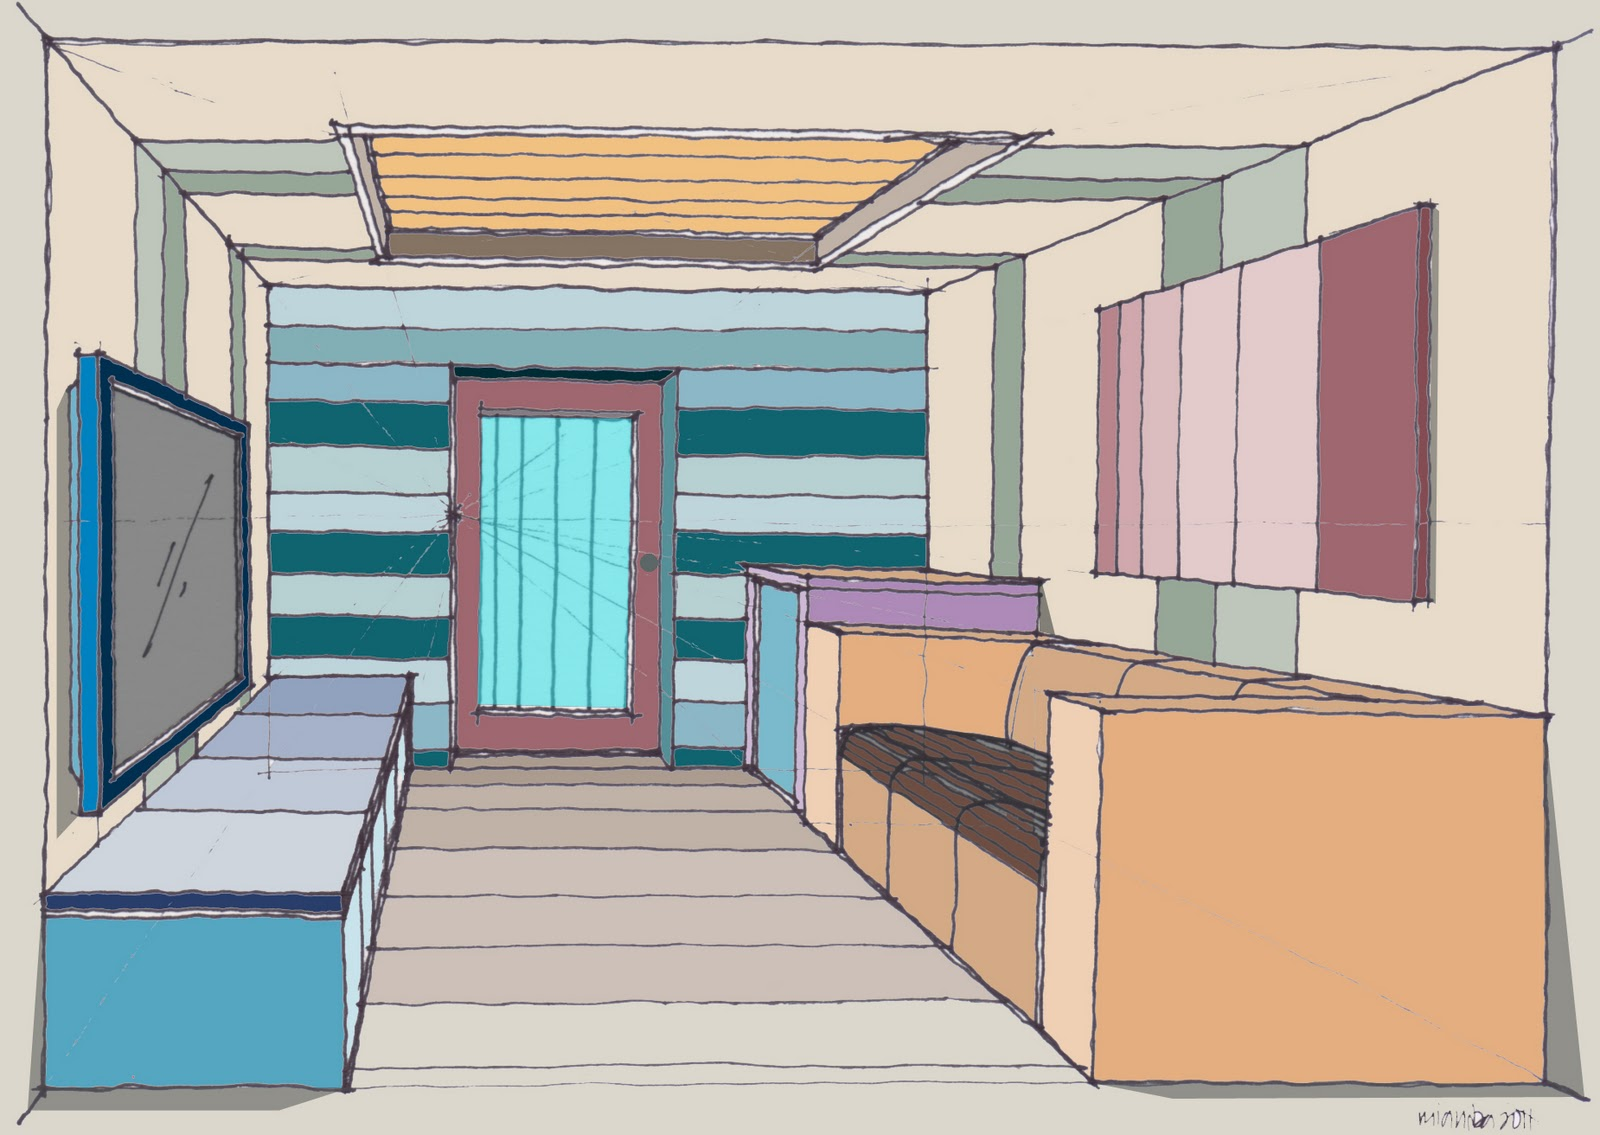 Sketch Draw How To Draw A Room 210111